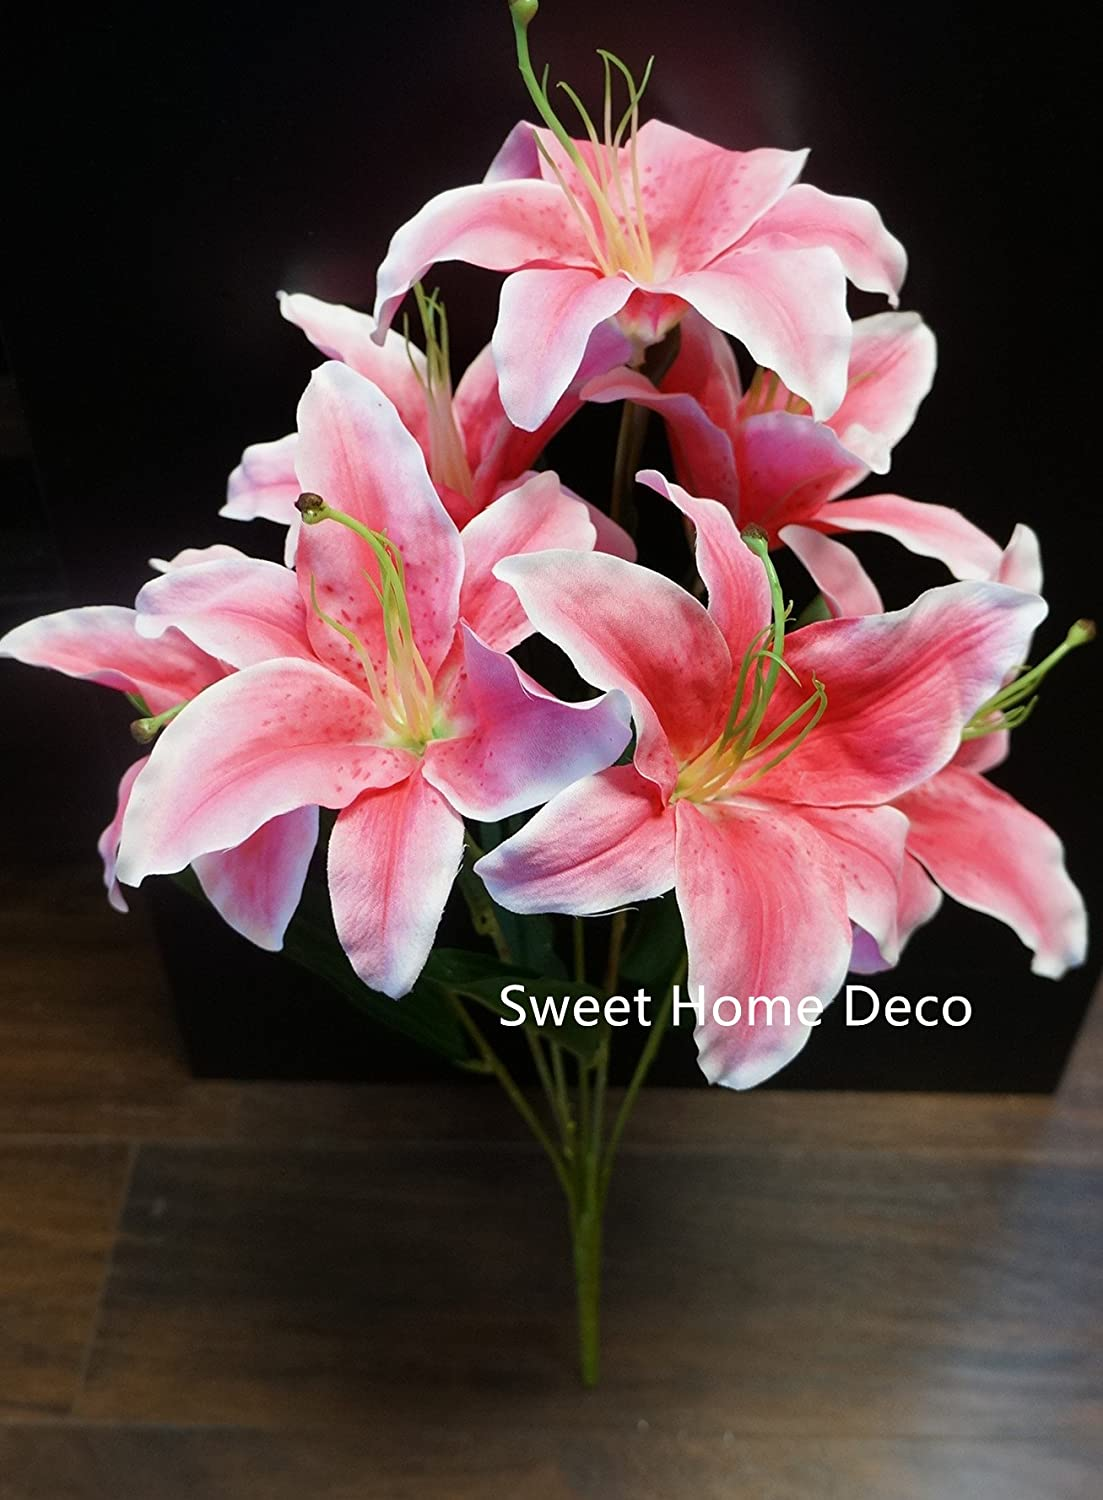 Amazon.com: Sweet Home Deco 22\'\' Silk Stargazer Lily Artificial ...